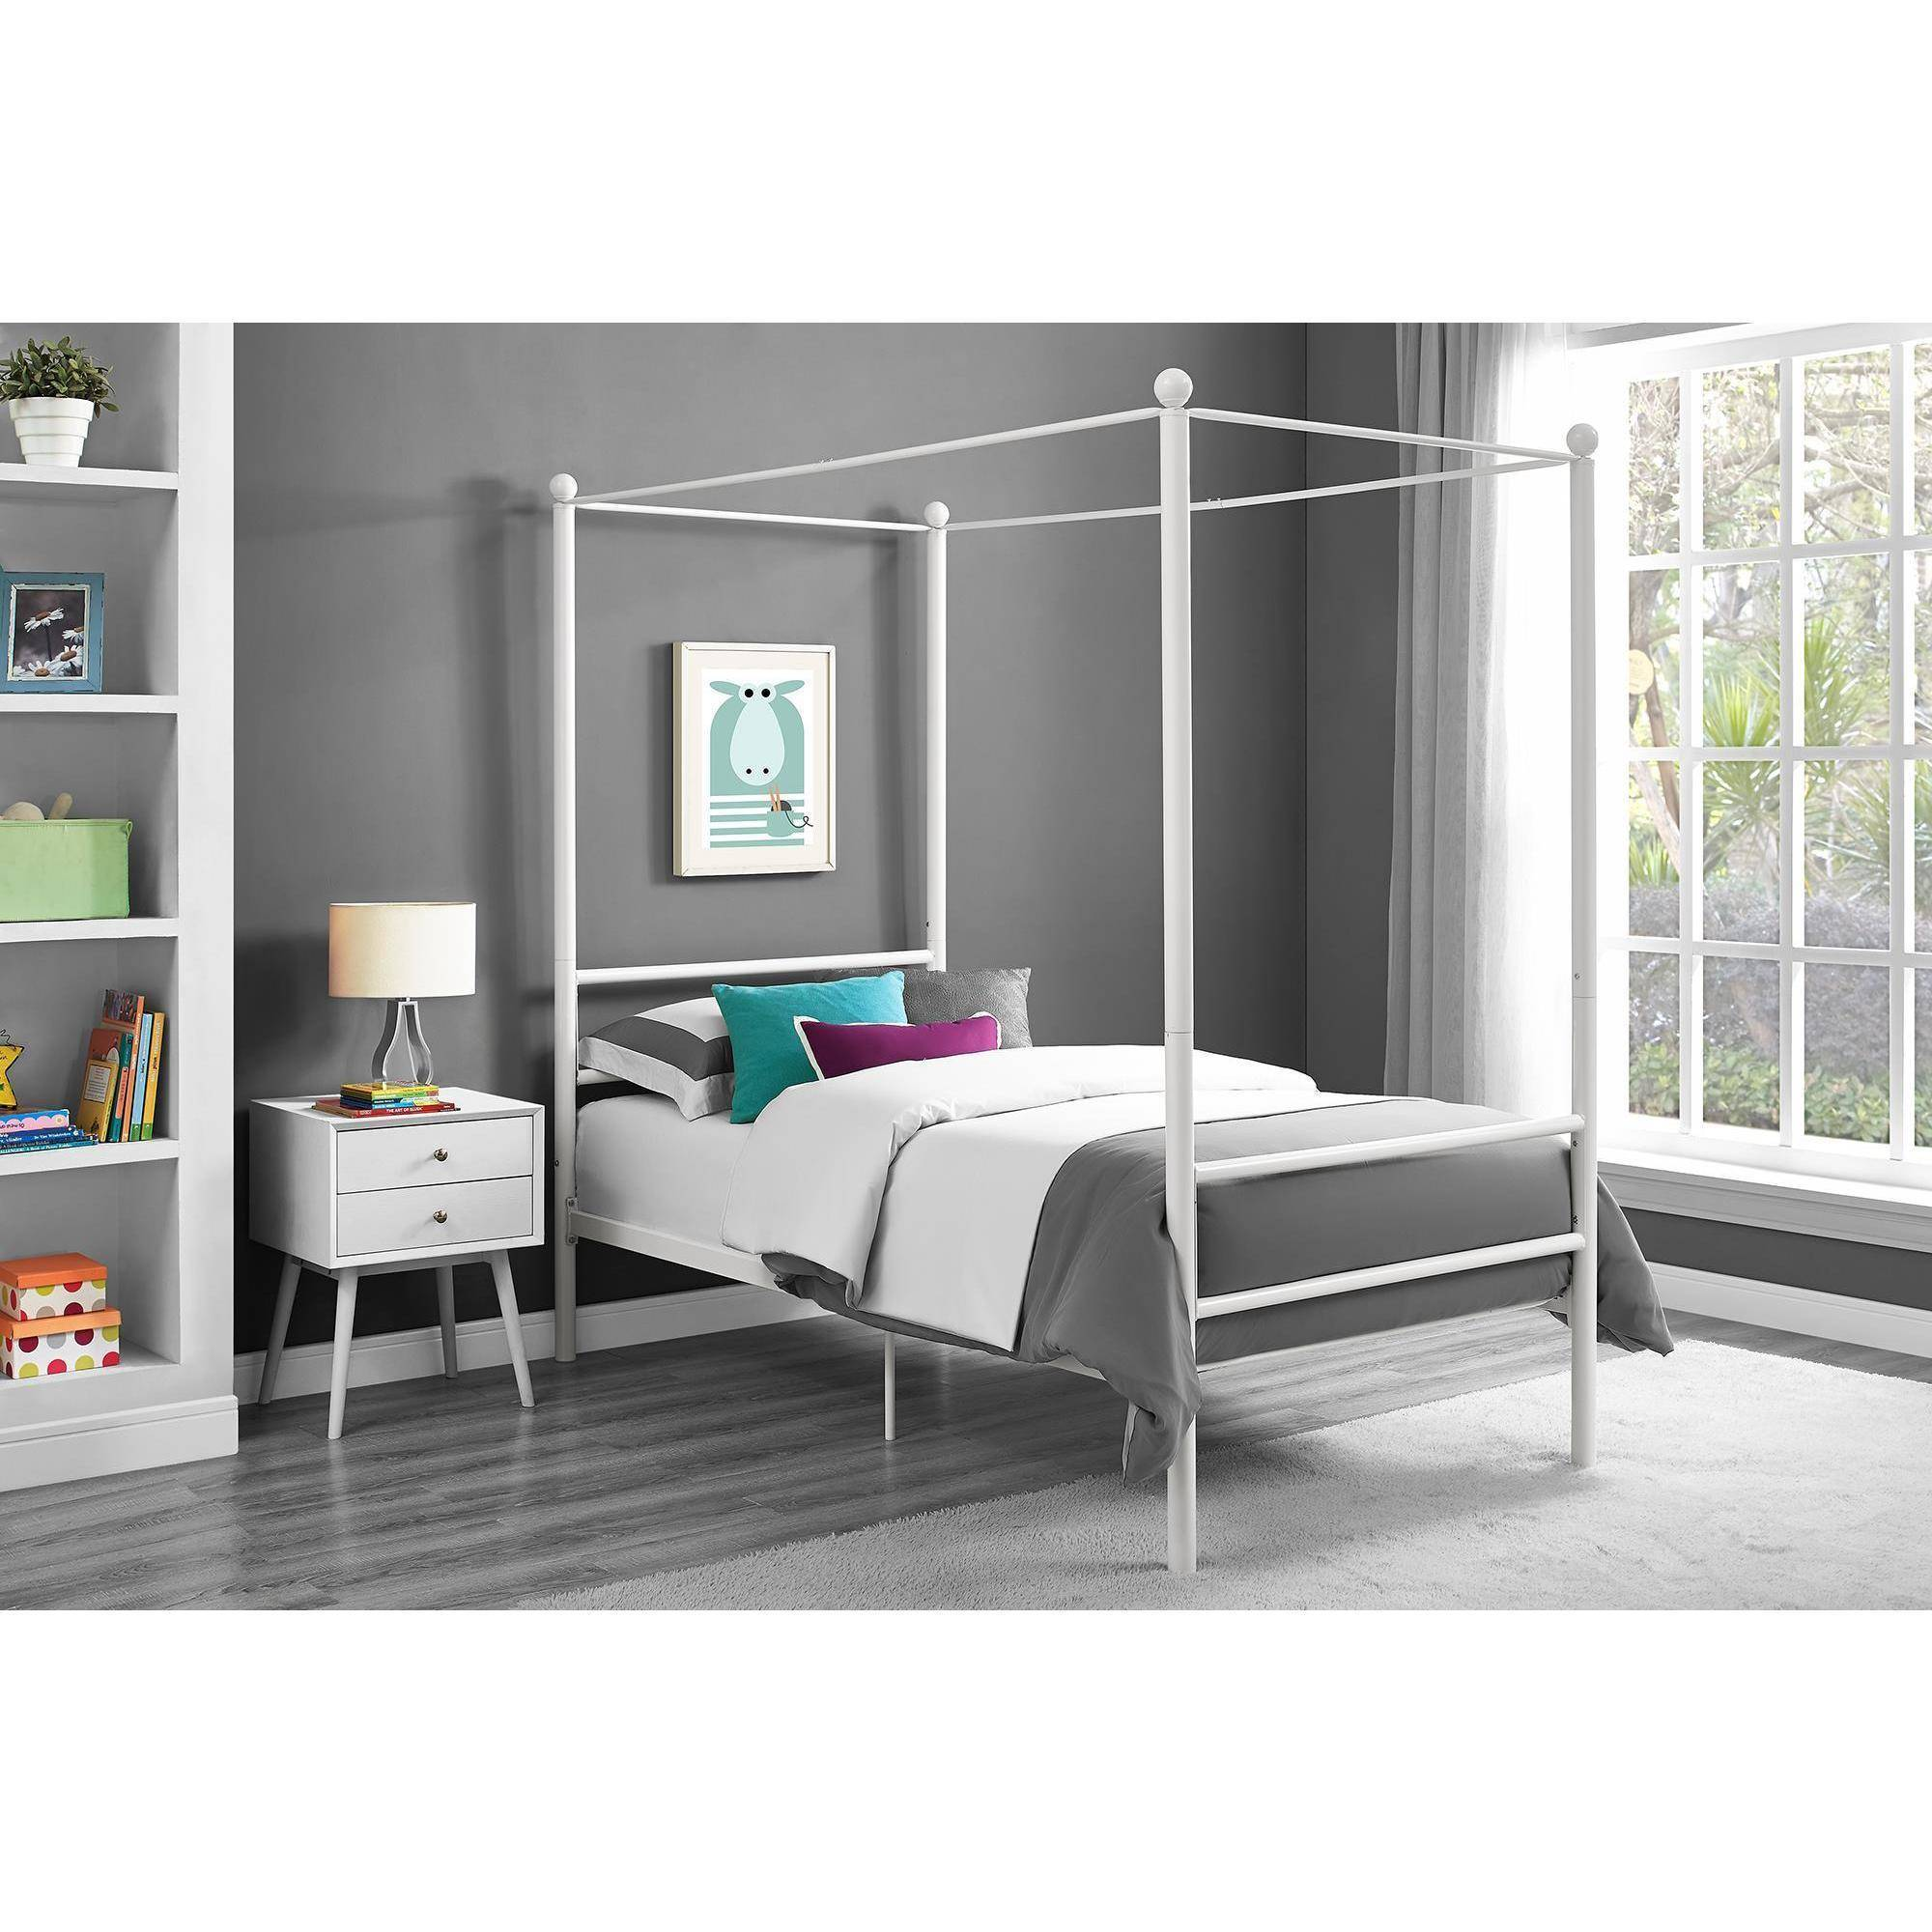 Mainstays Metal Canopy Twin Size Bed